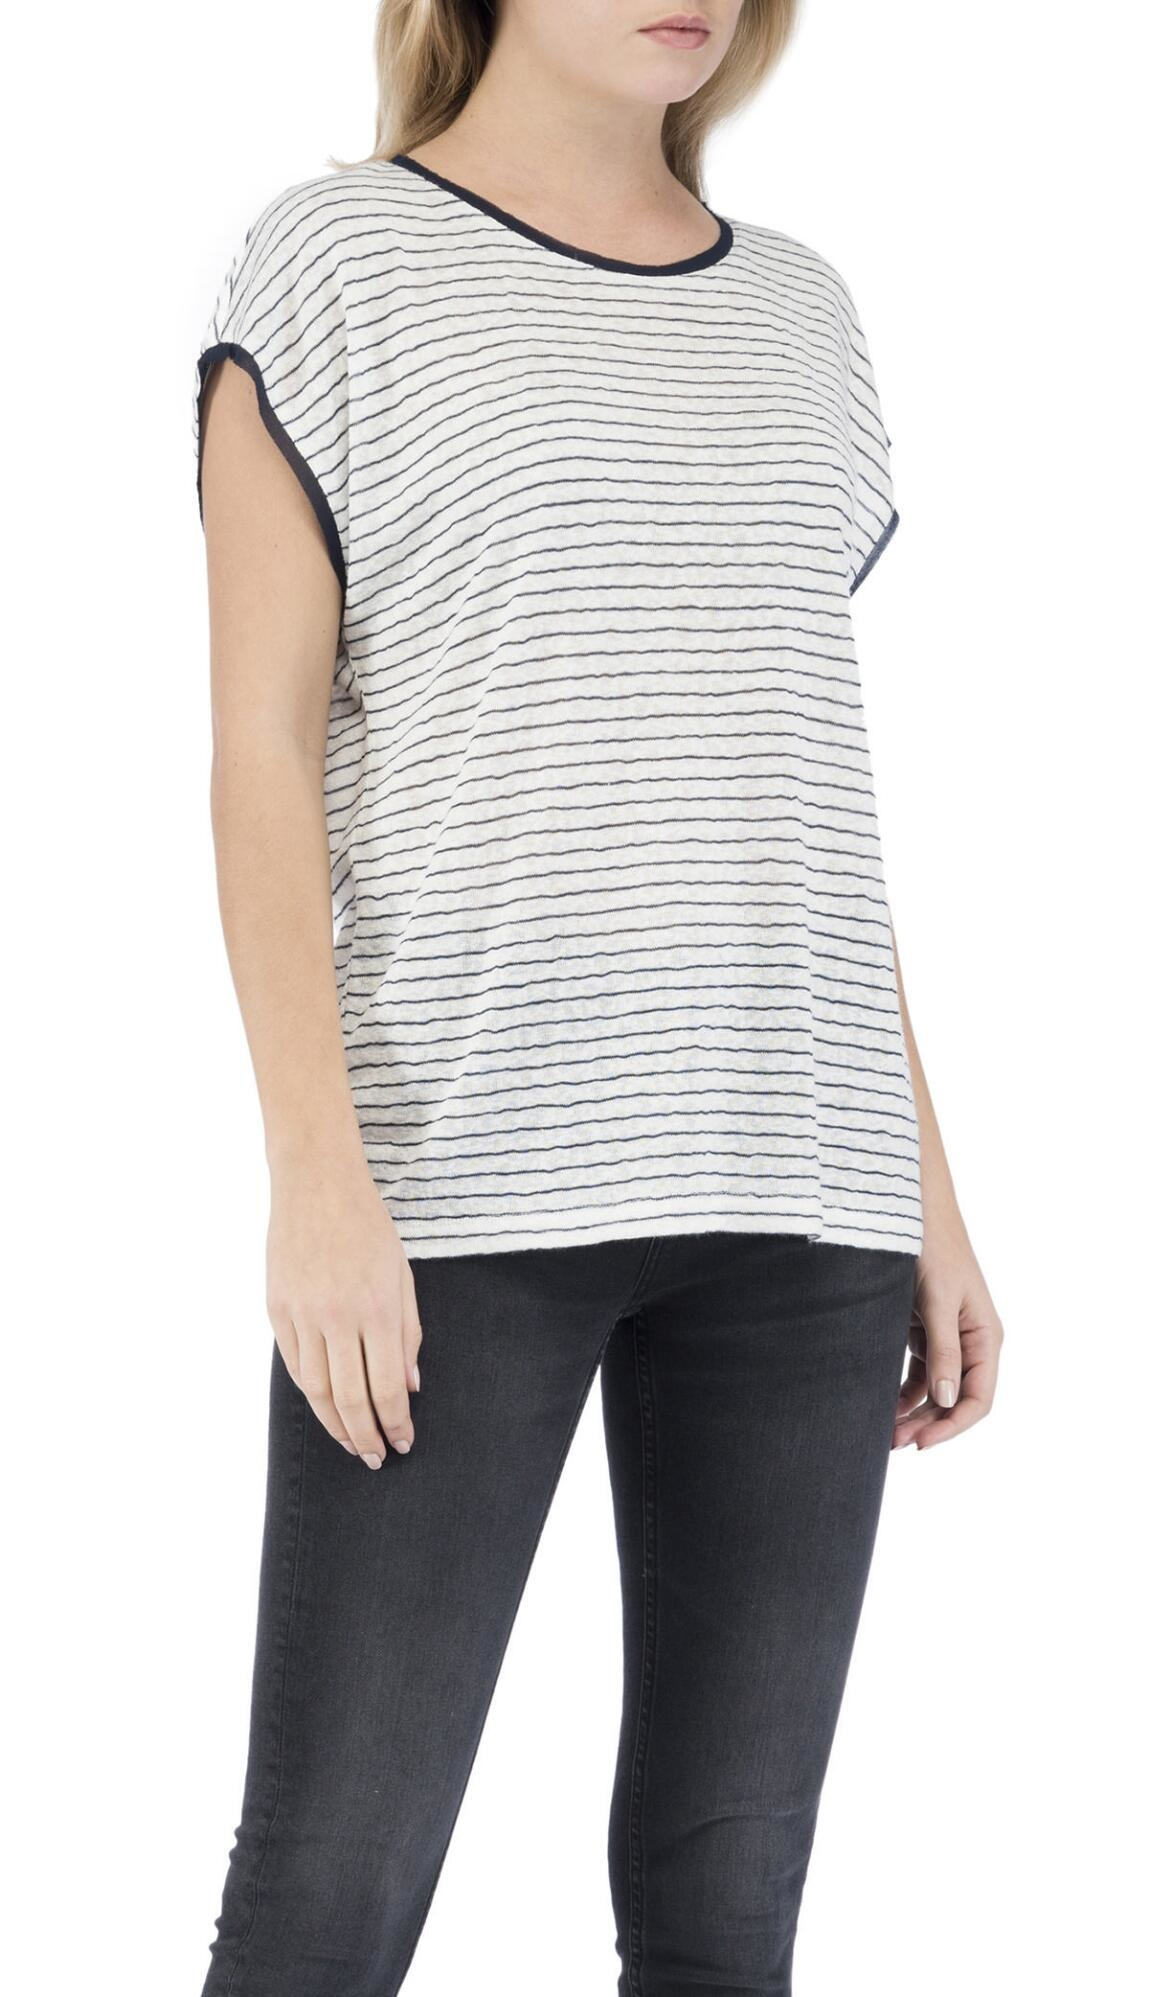 B Collection by Bobeau Therese Scoop Neck Top